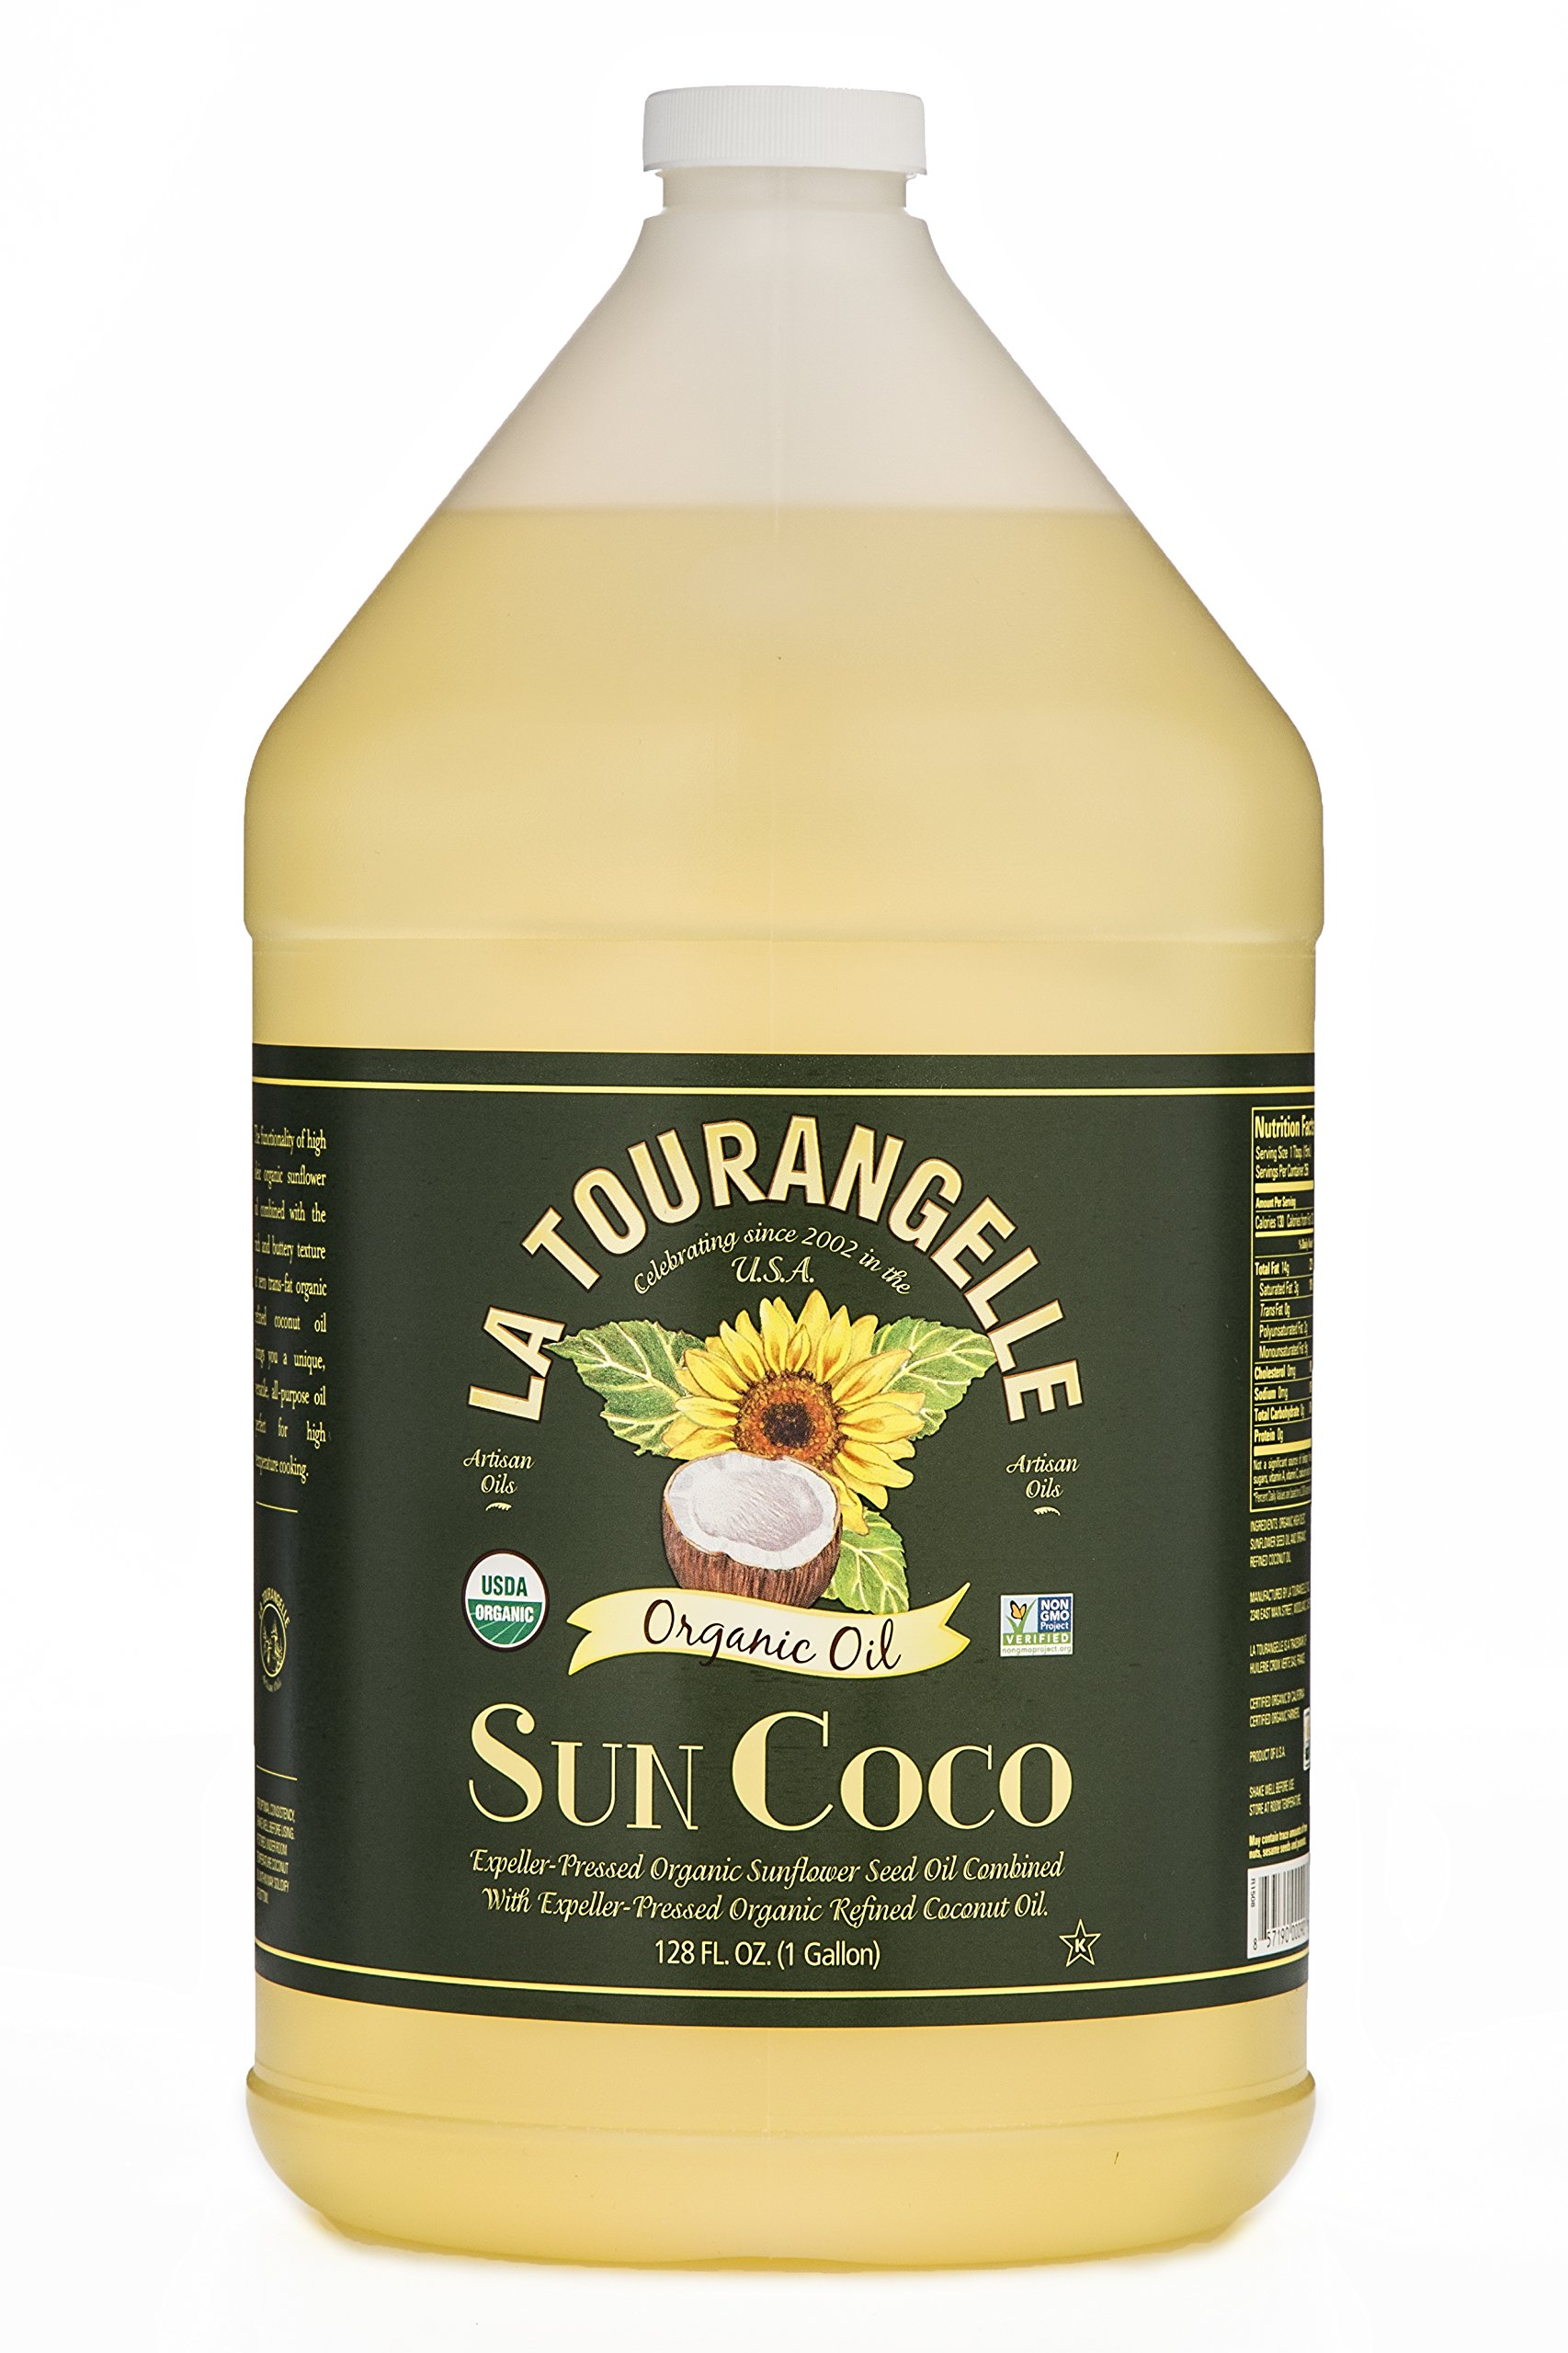 La Tourangelle Organic Sun Coco Oil 128 Fl. Oz., Neutral Flavor & High Smoke Point, Blend of Organic Sunflower Oil and Organic Coconut Oil